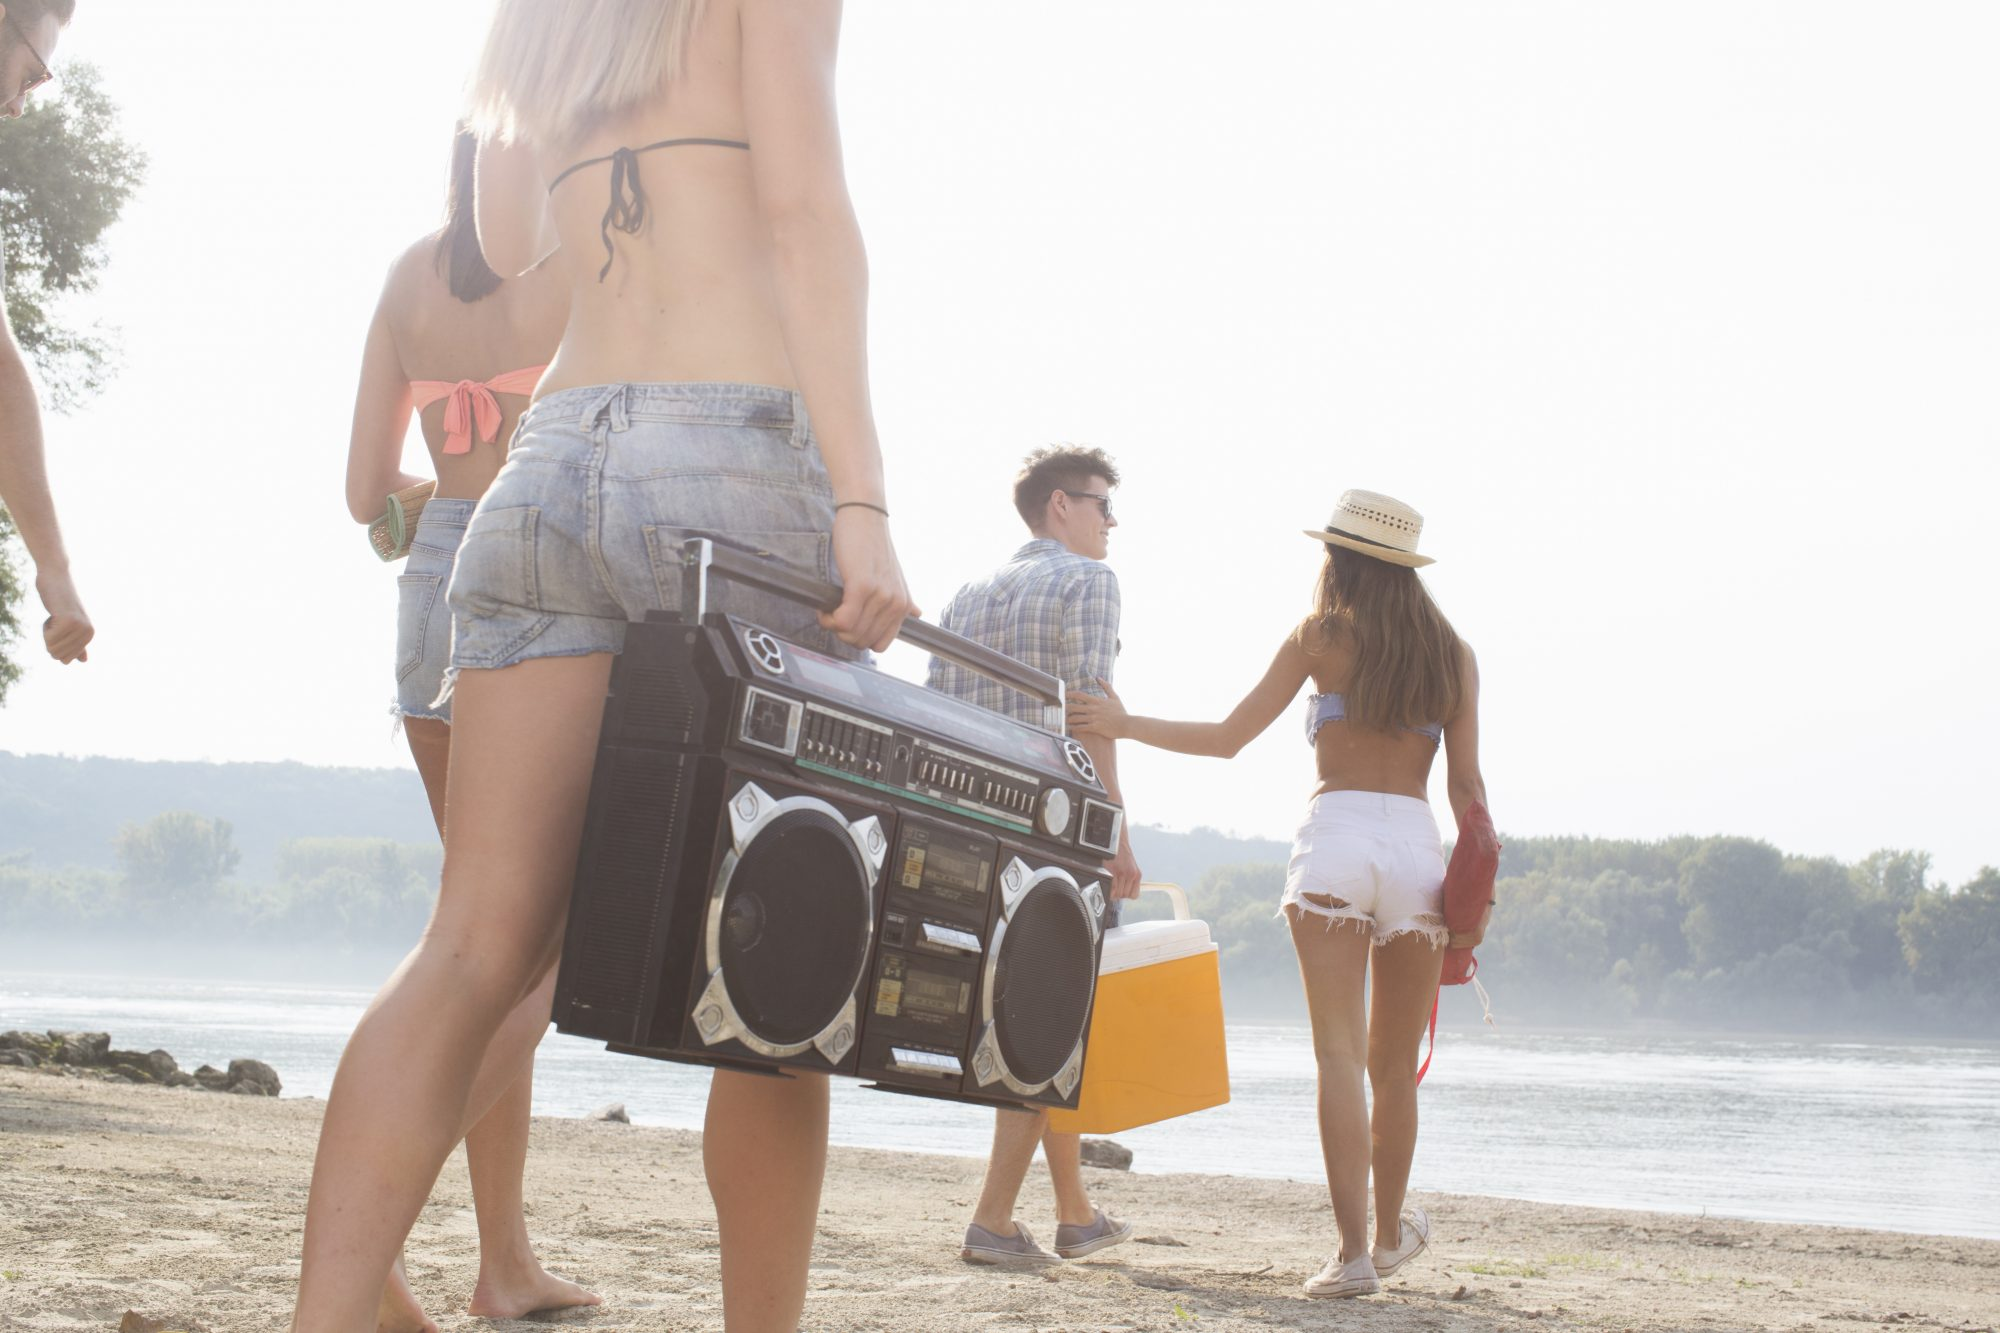 Image of a beach party